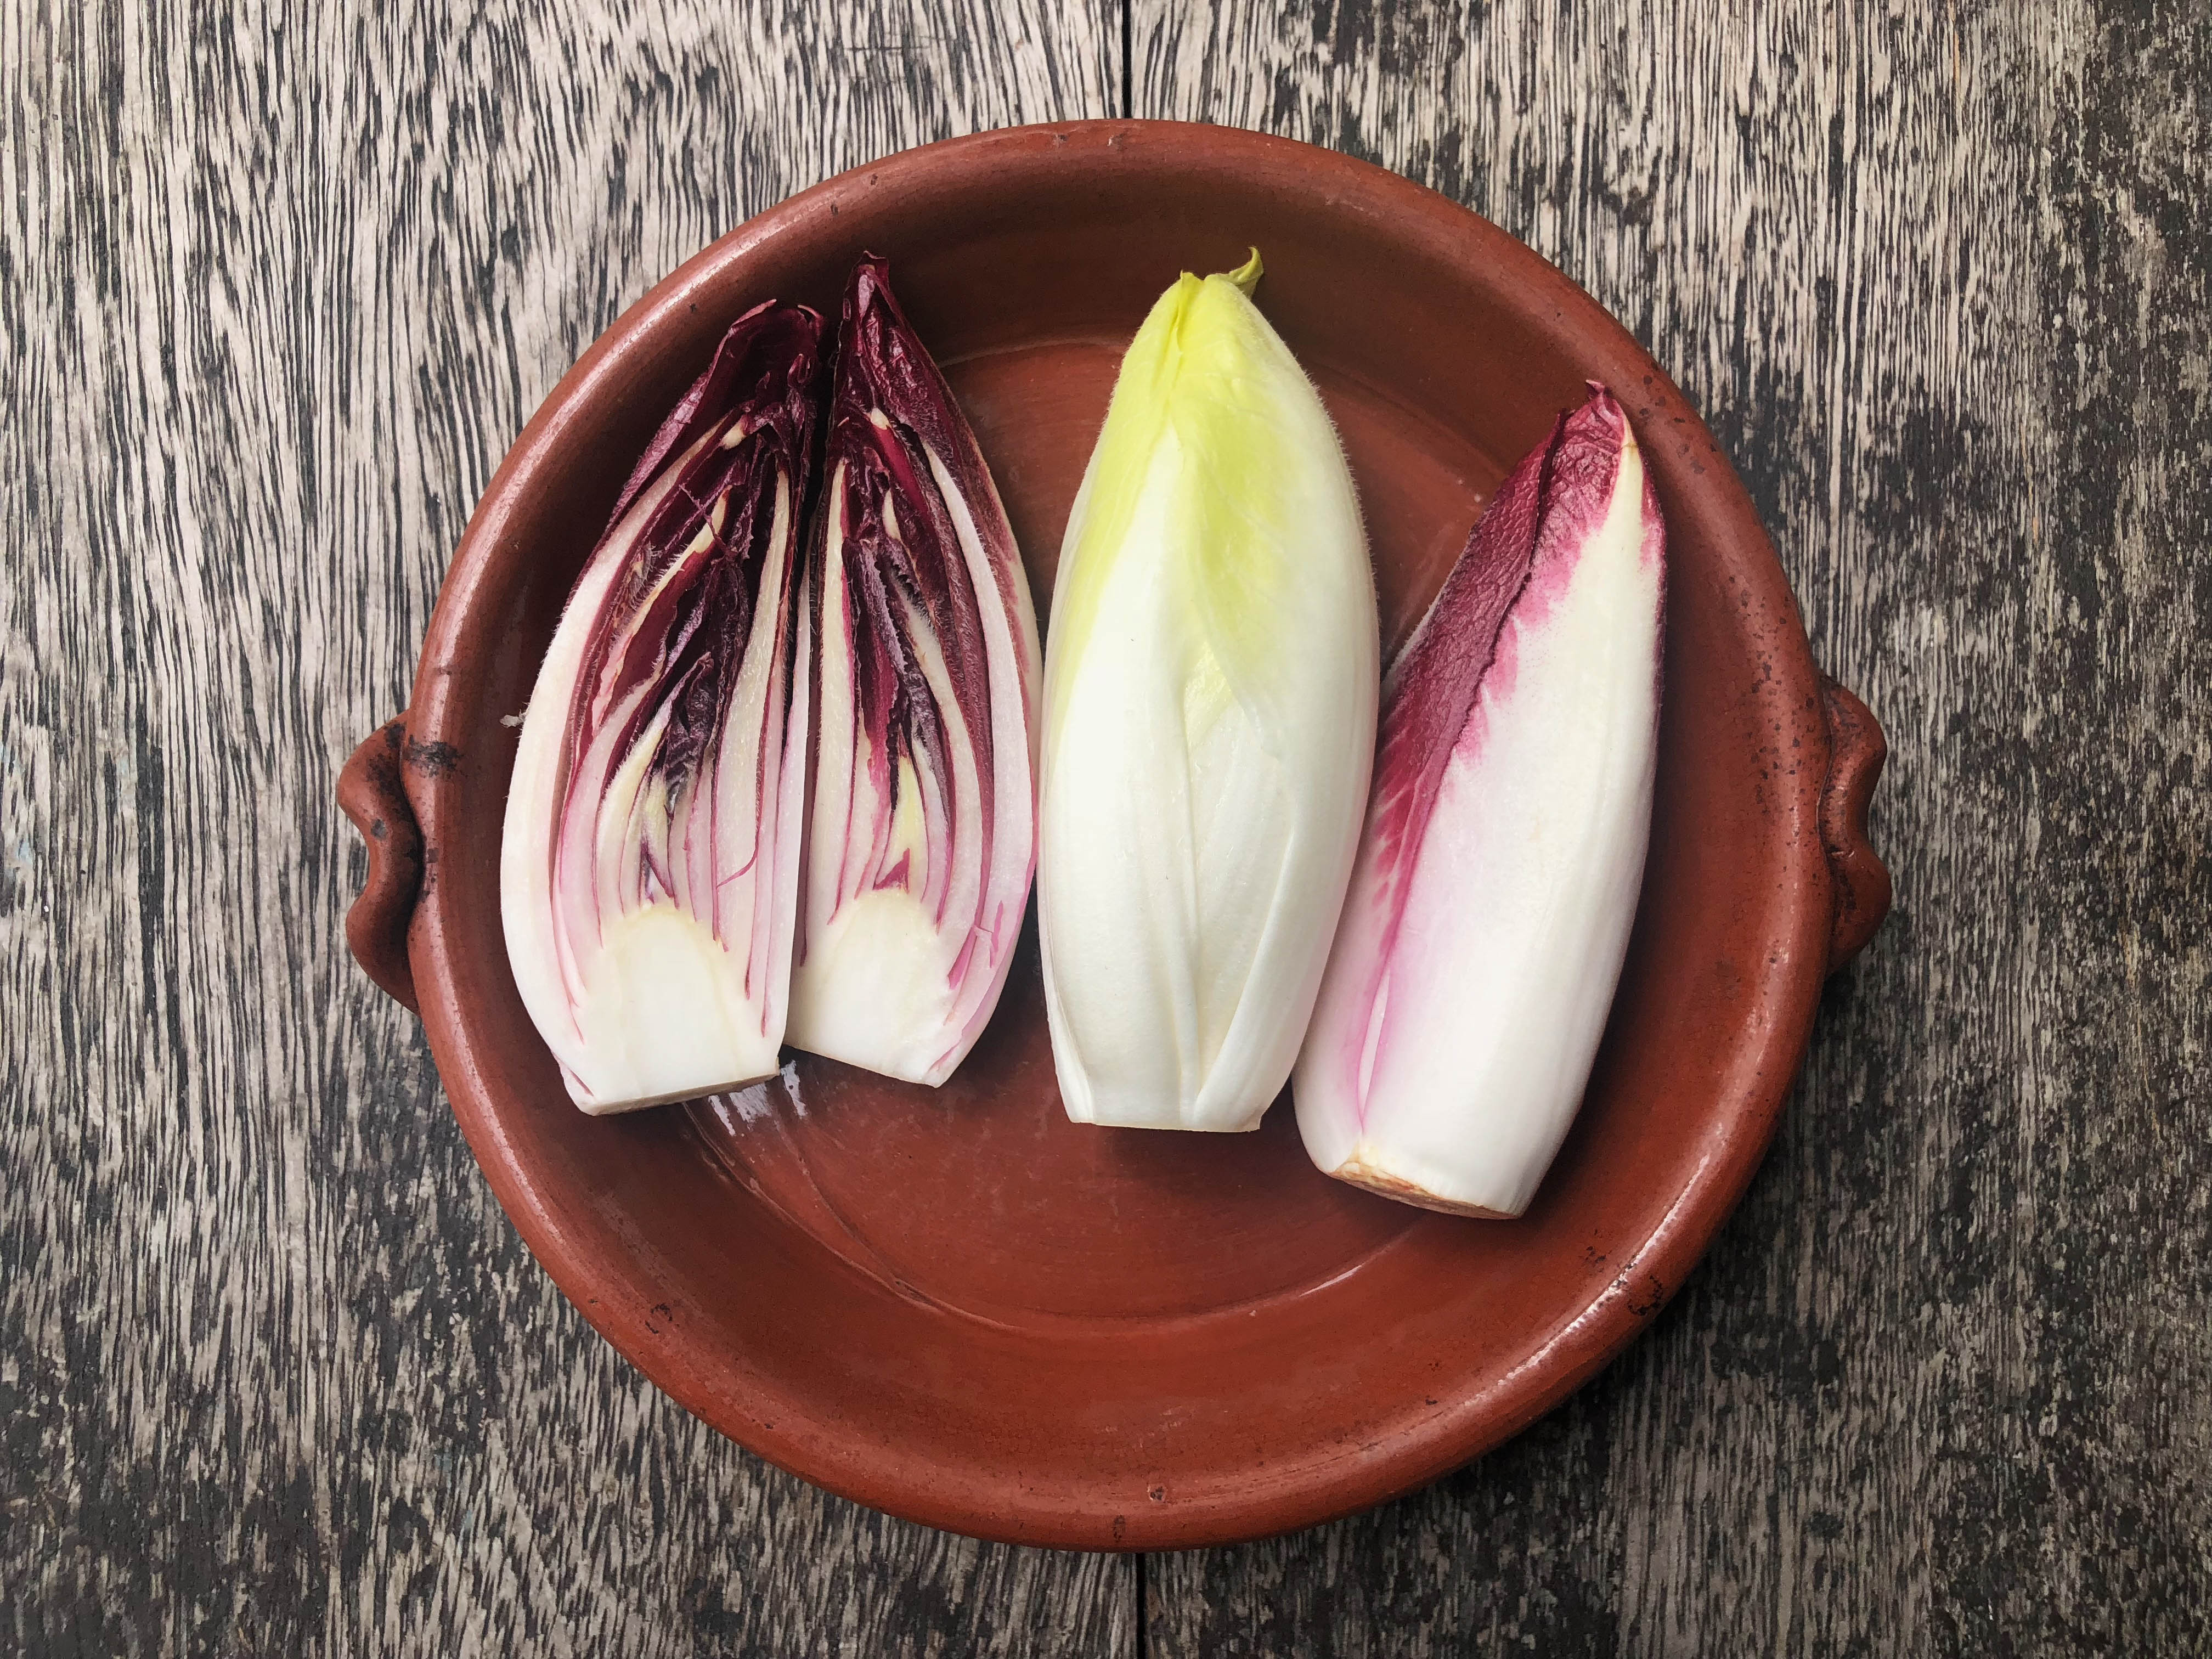 photo-1-red-and-white-endives-in-whole-and-halves